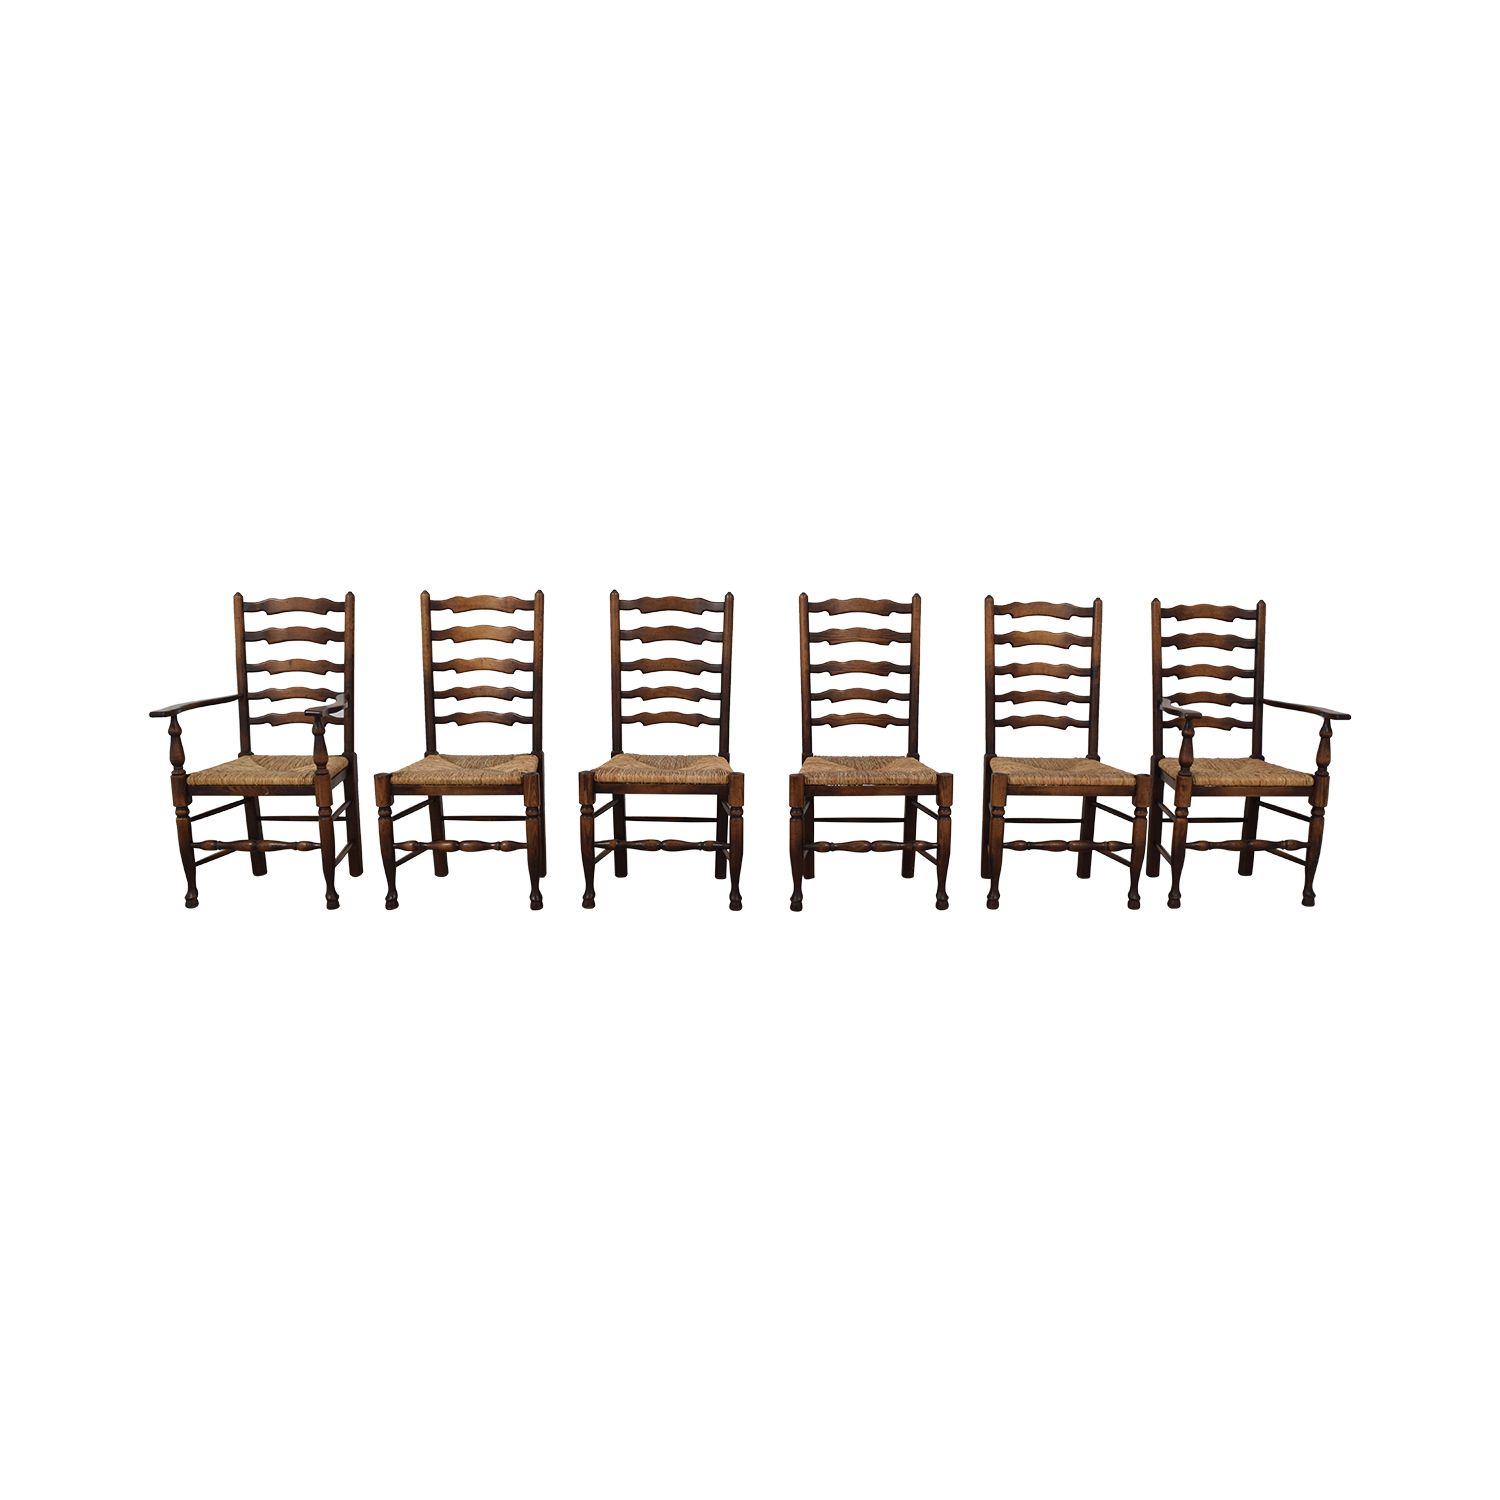 shop Fauld Refectory Wood Dining Chairs Fauld Dining Chairs